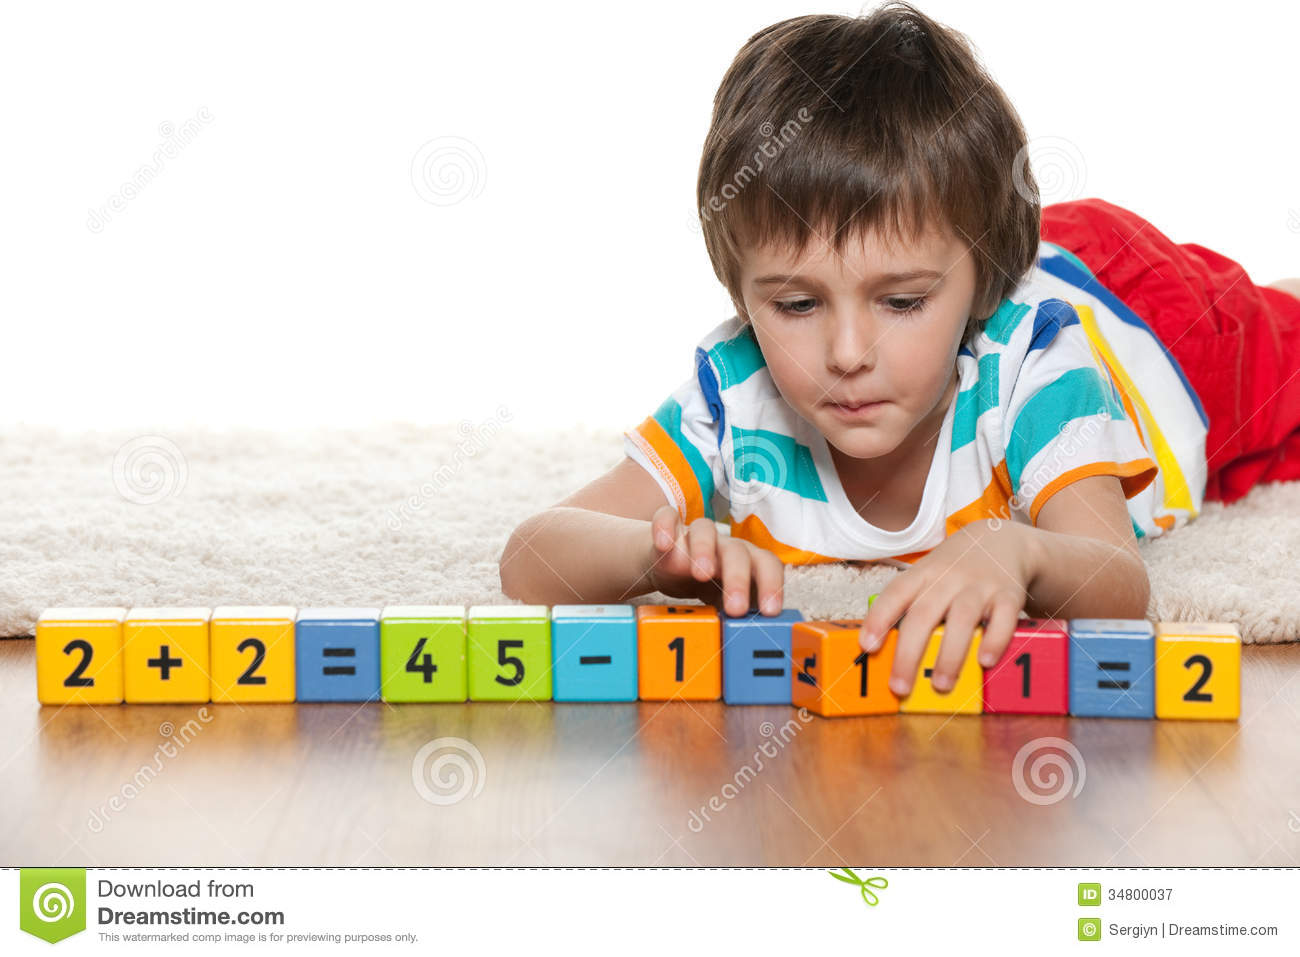 Photography Studio Floor Plans Clever Boy With Blocks On The Floor Royalty Free Stock